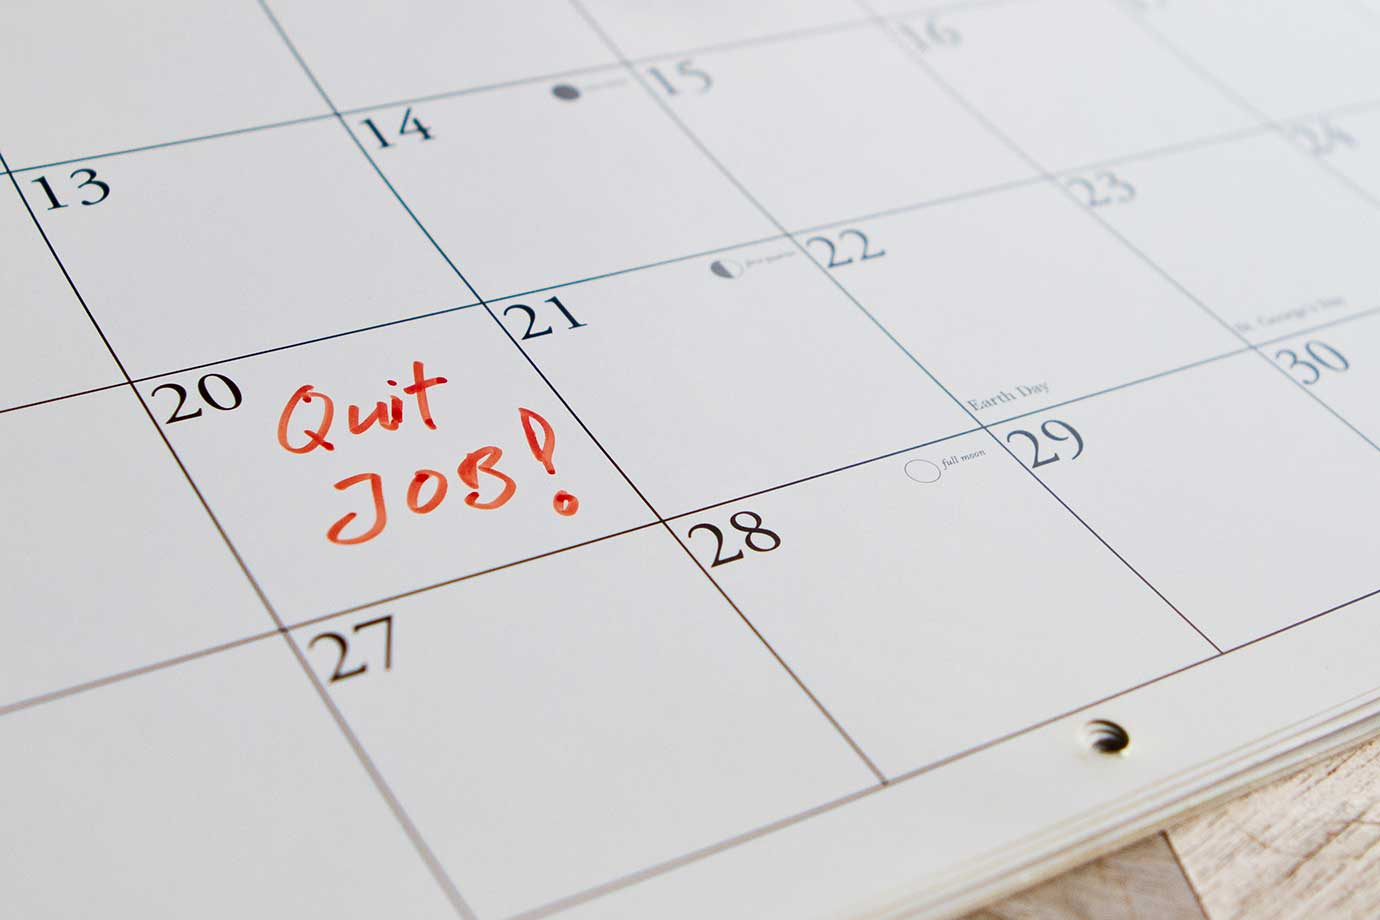 Resigning Serving A Notice Period Is Mandatory